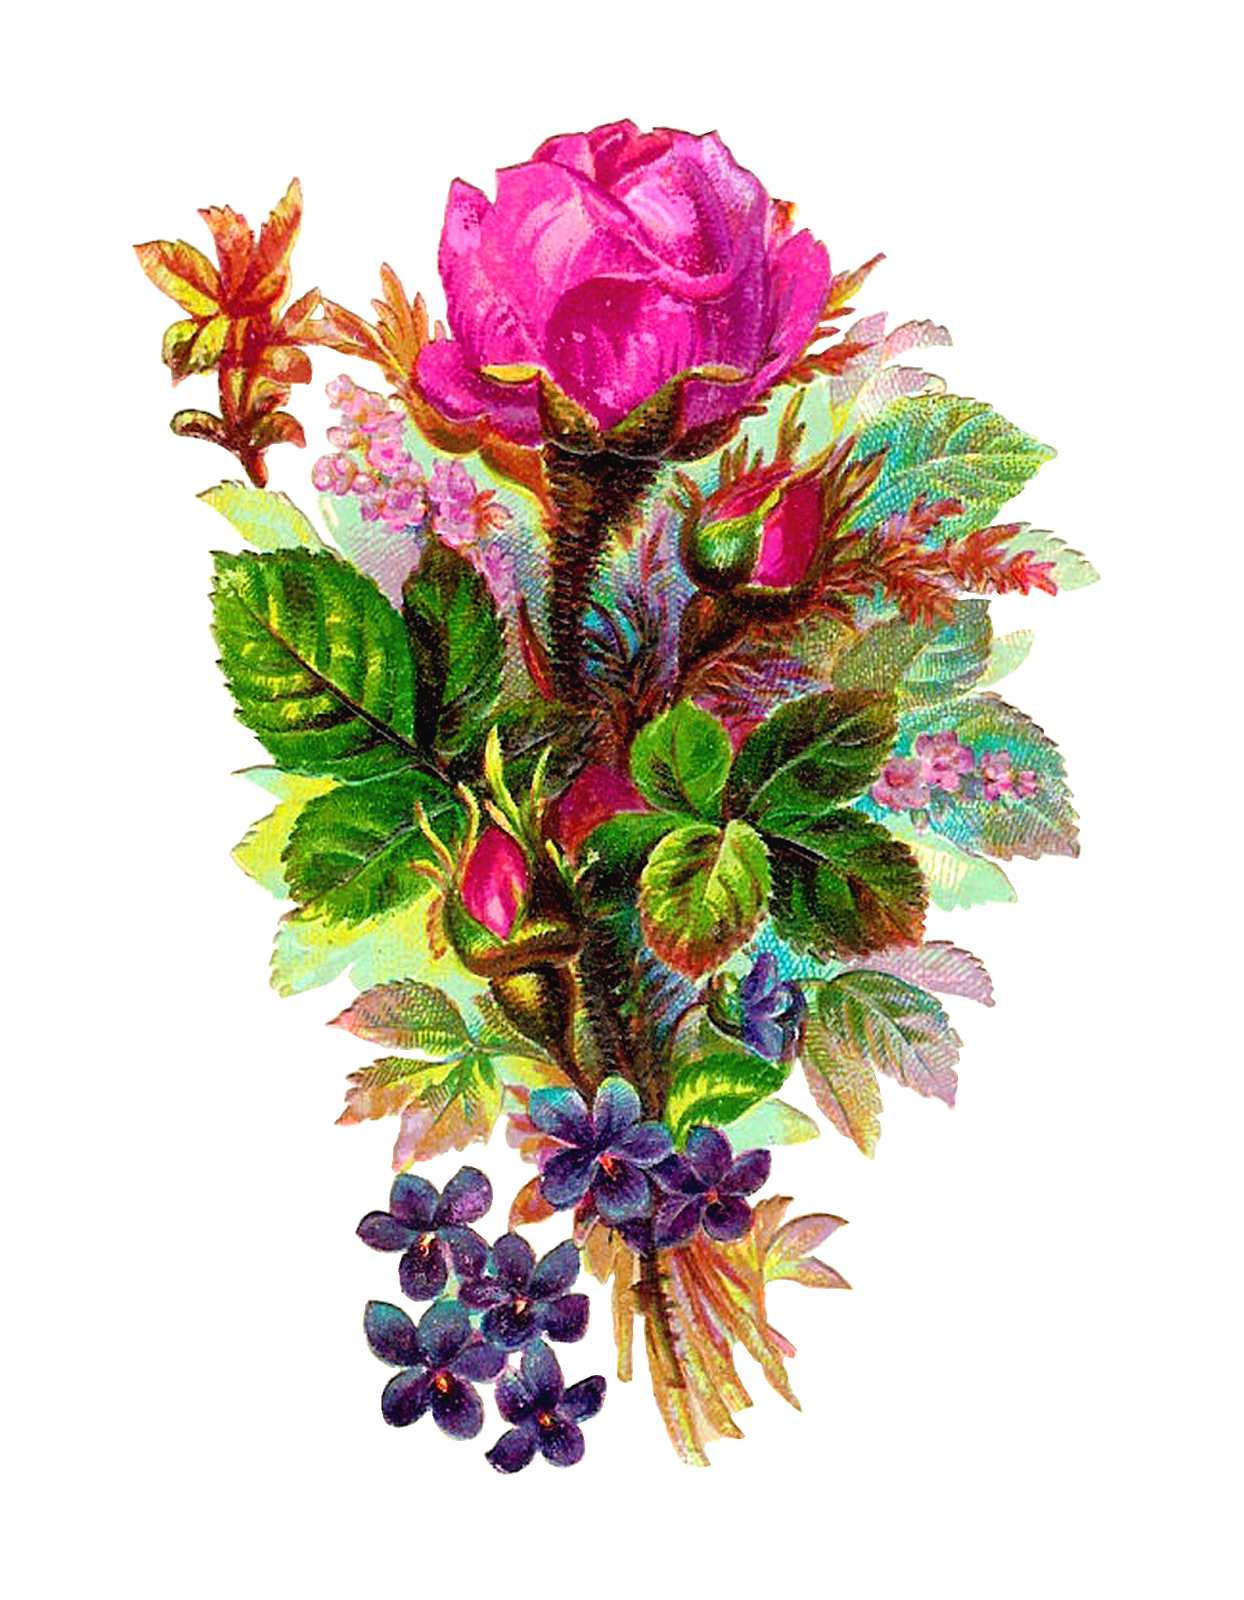 Clipart flower bouquet peach and green graphic stock Antique Images: Vintage Digital Flower Clip Art Pink Rose Bouquet ... graphic stock